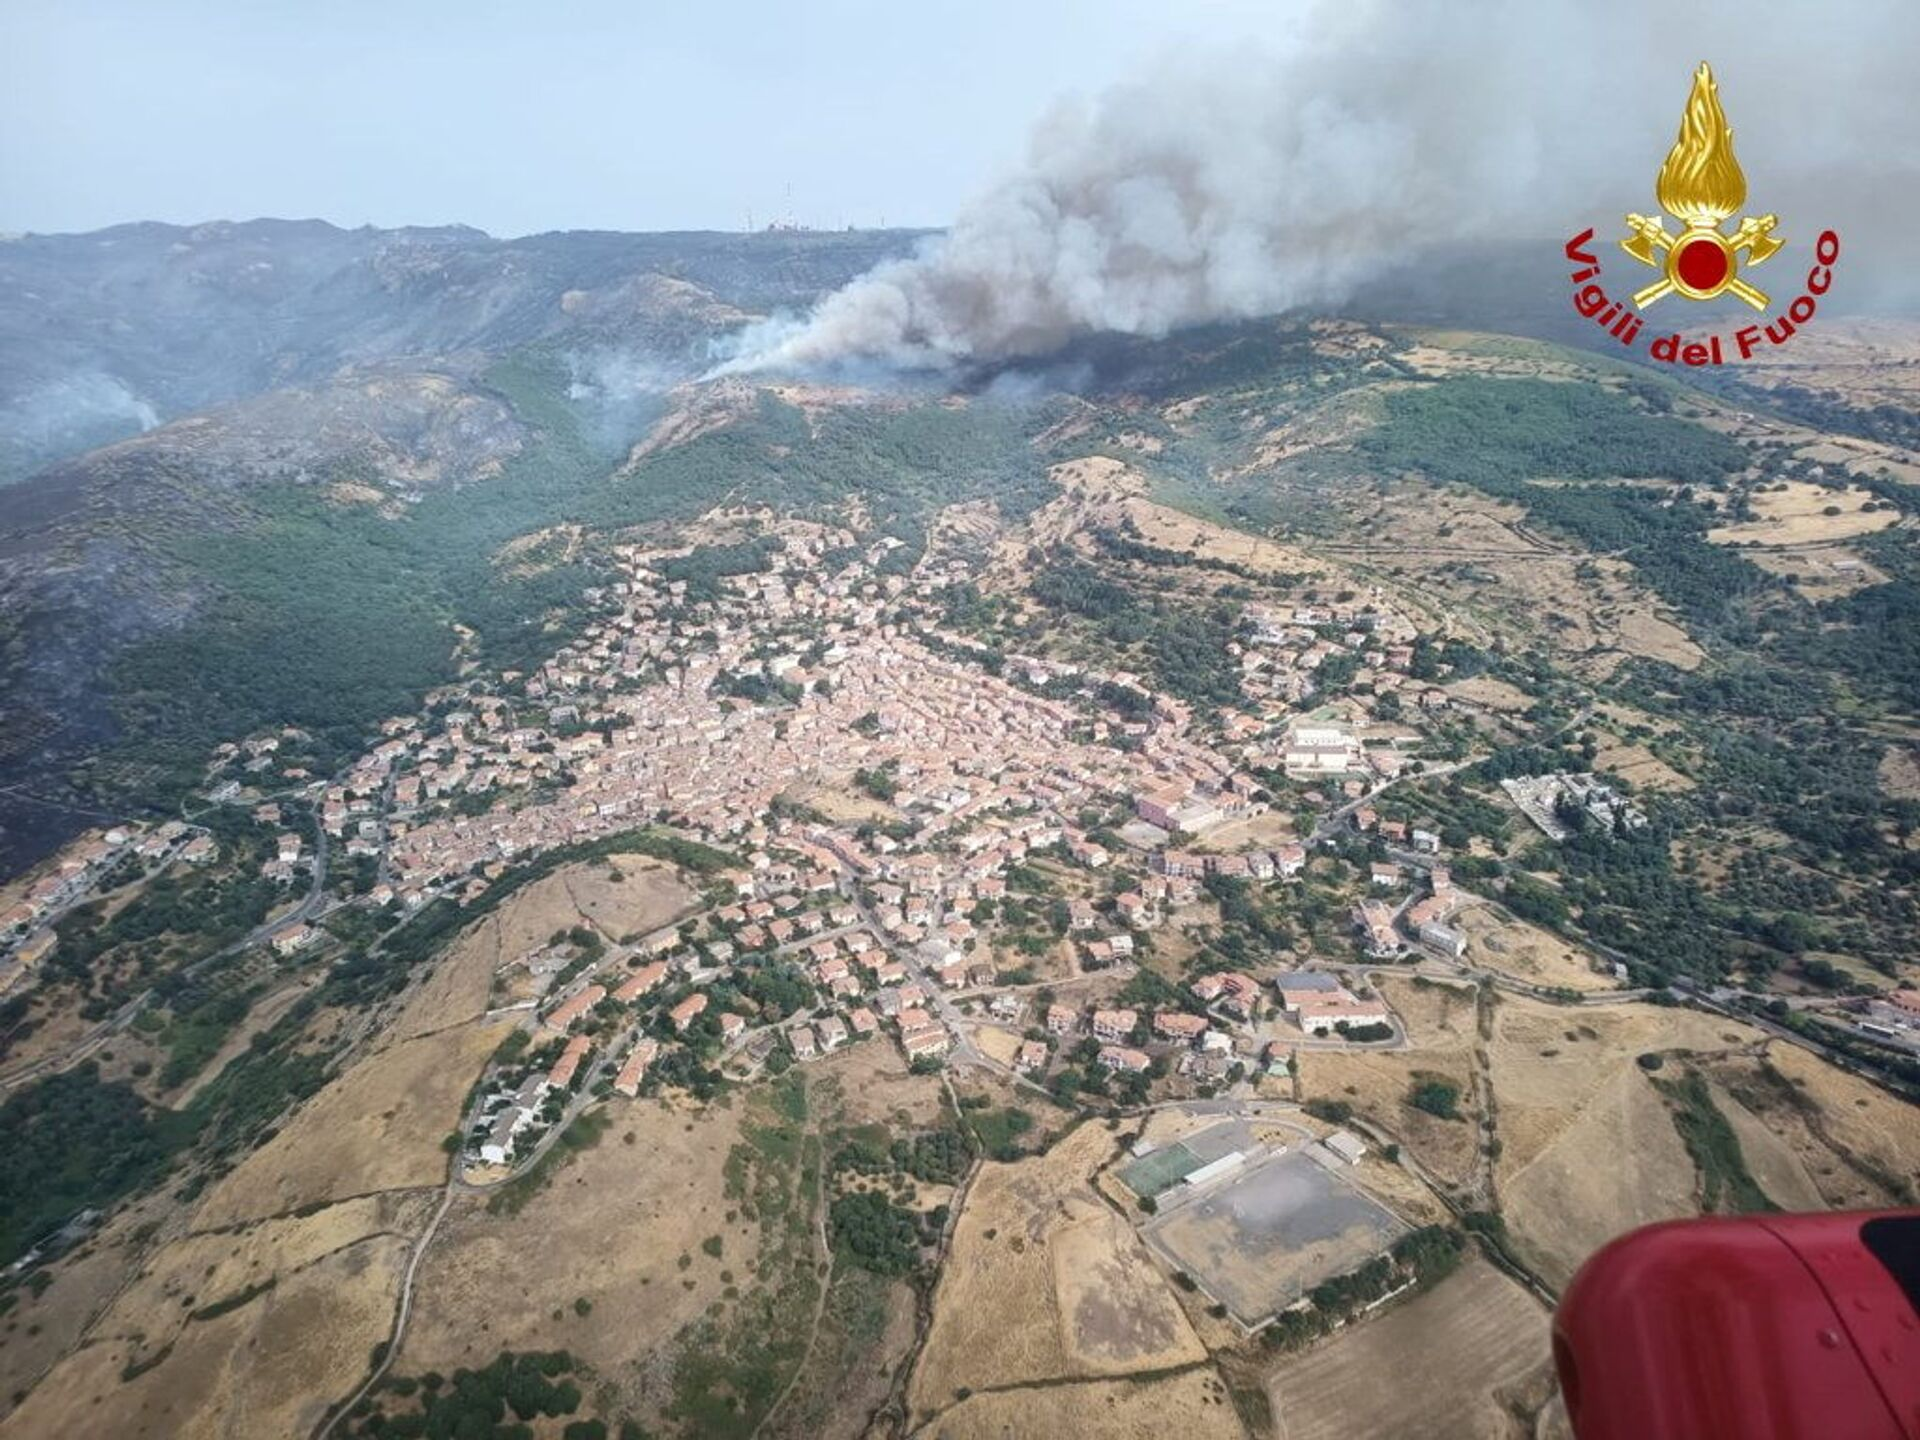 An aerial view from a helicopter shows a large wildfire that broke out near Santu Lussurgiu, Sardinia, Italy July 25, 2021. - Sputnik International, 1920, 07.09.2021